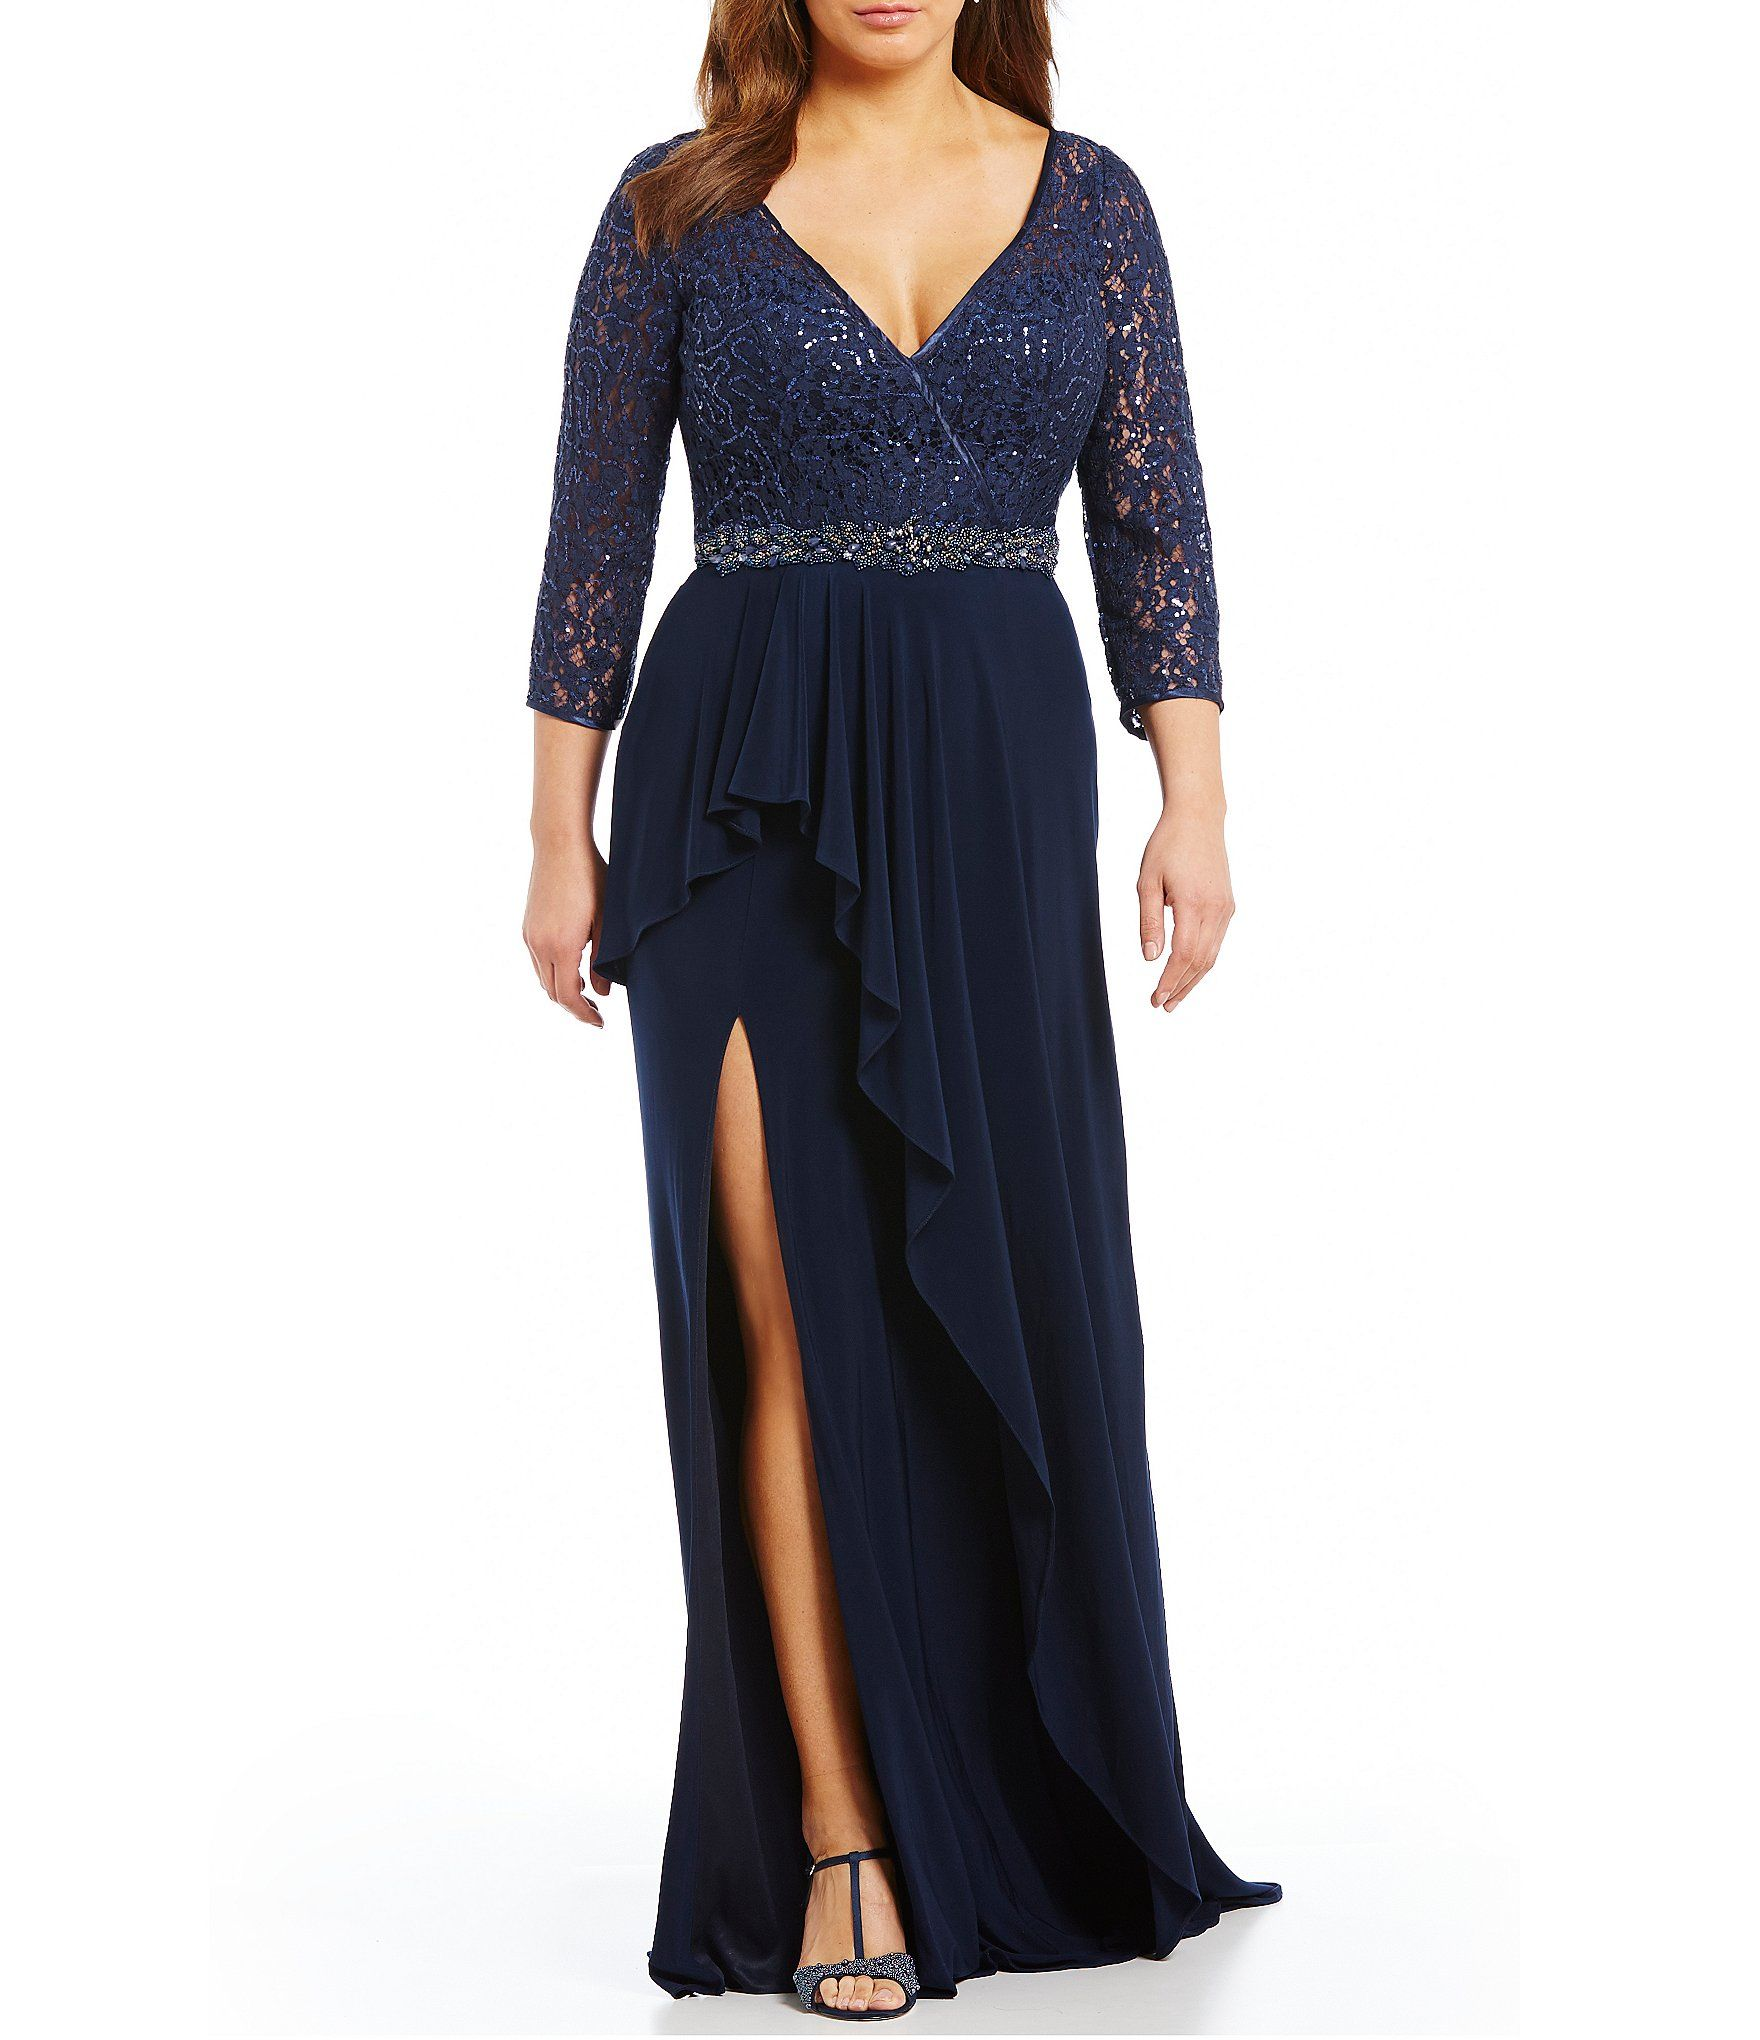 Shop for Glamour by Terani Couture Plus Sequin Lace Gown at Dillards.com.  Visit Dillards.com to find clothing 7fbb09e9de88